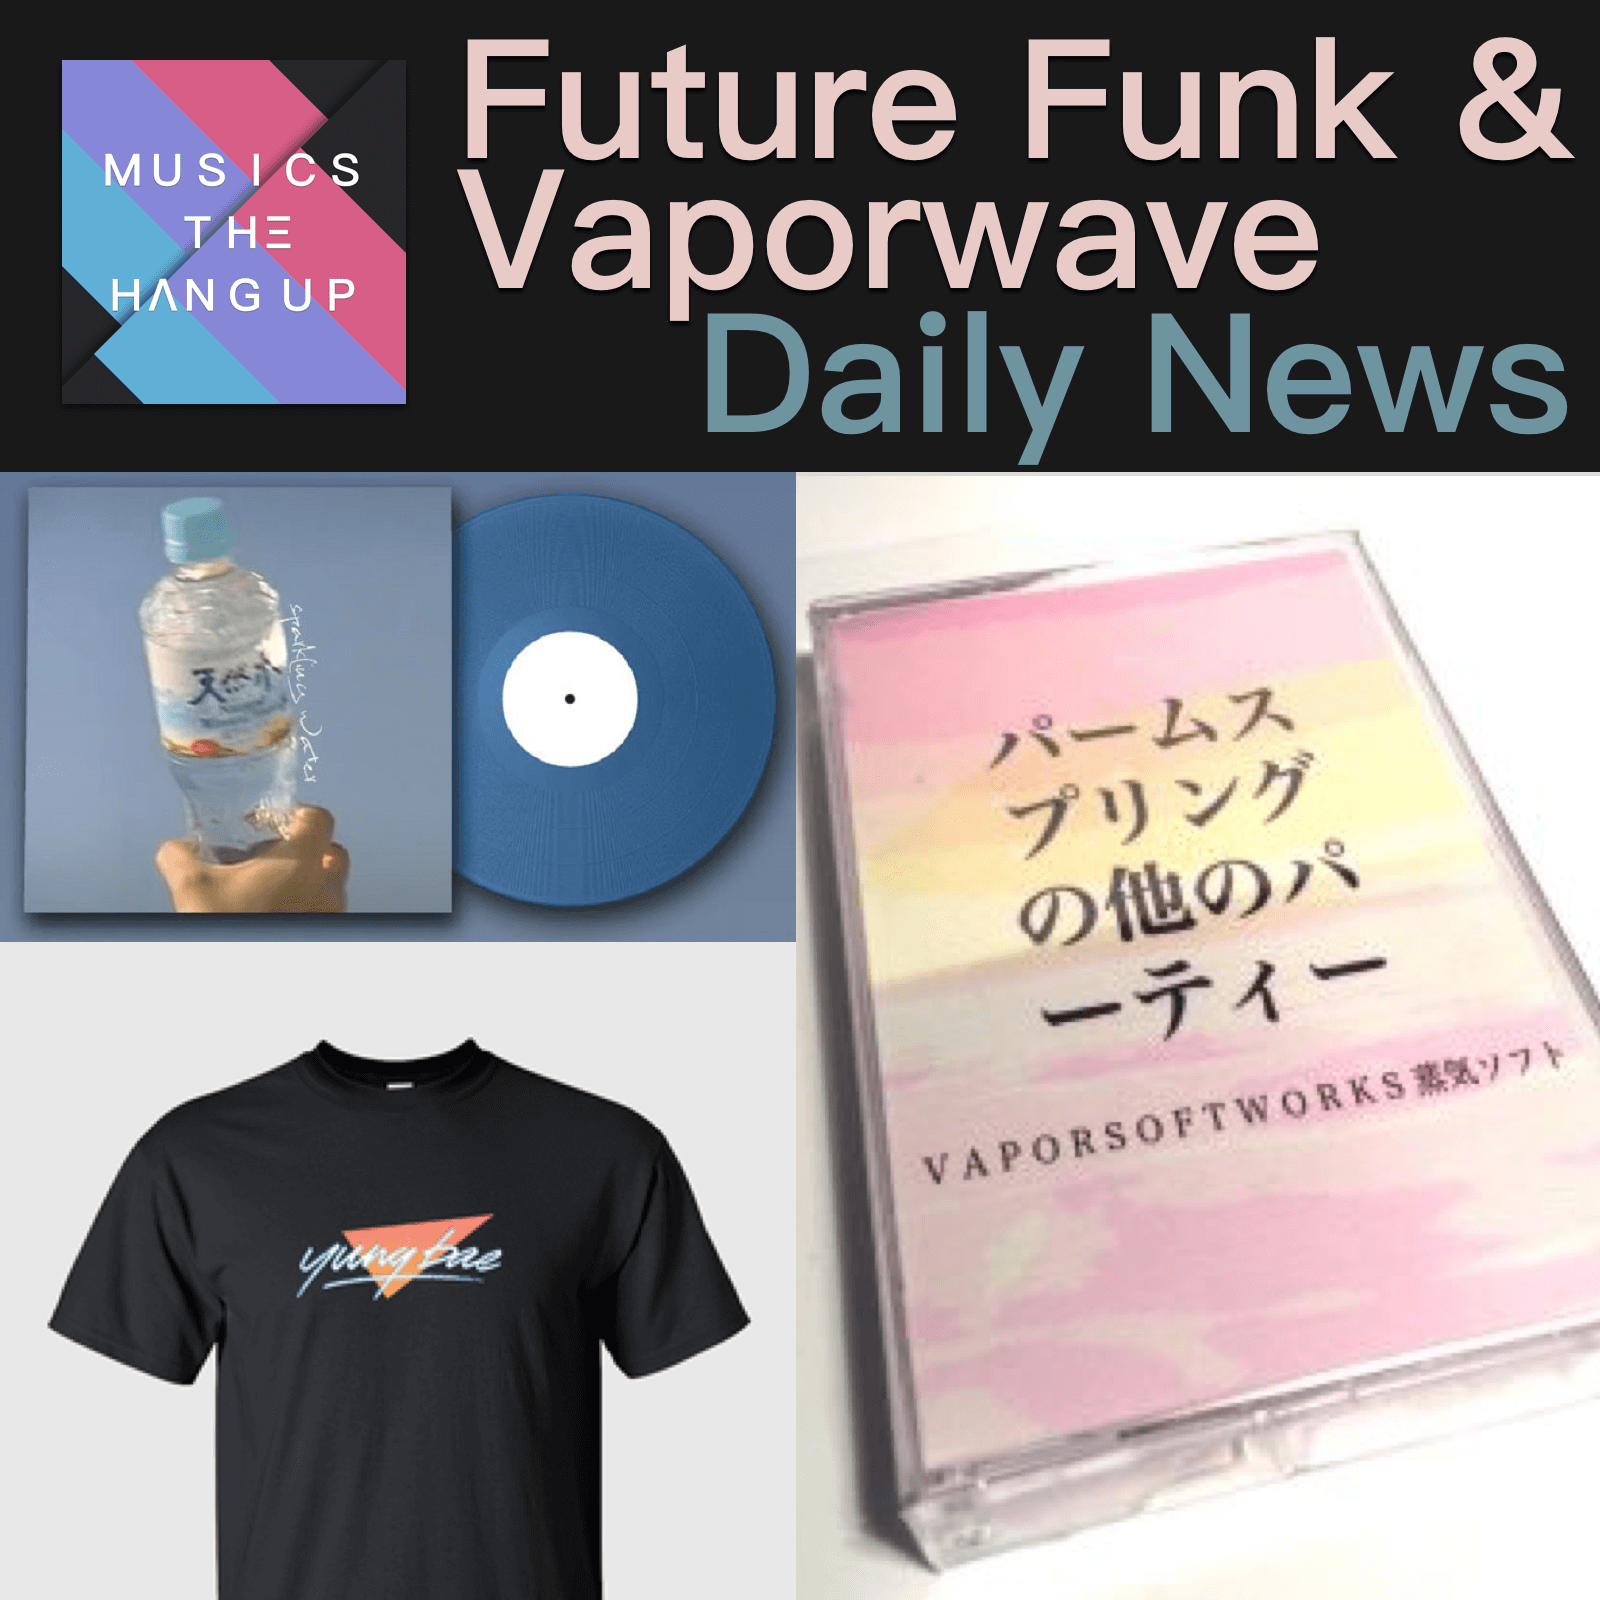 Future Funk & Vaporwave Daily News - 3/31/2019